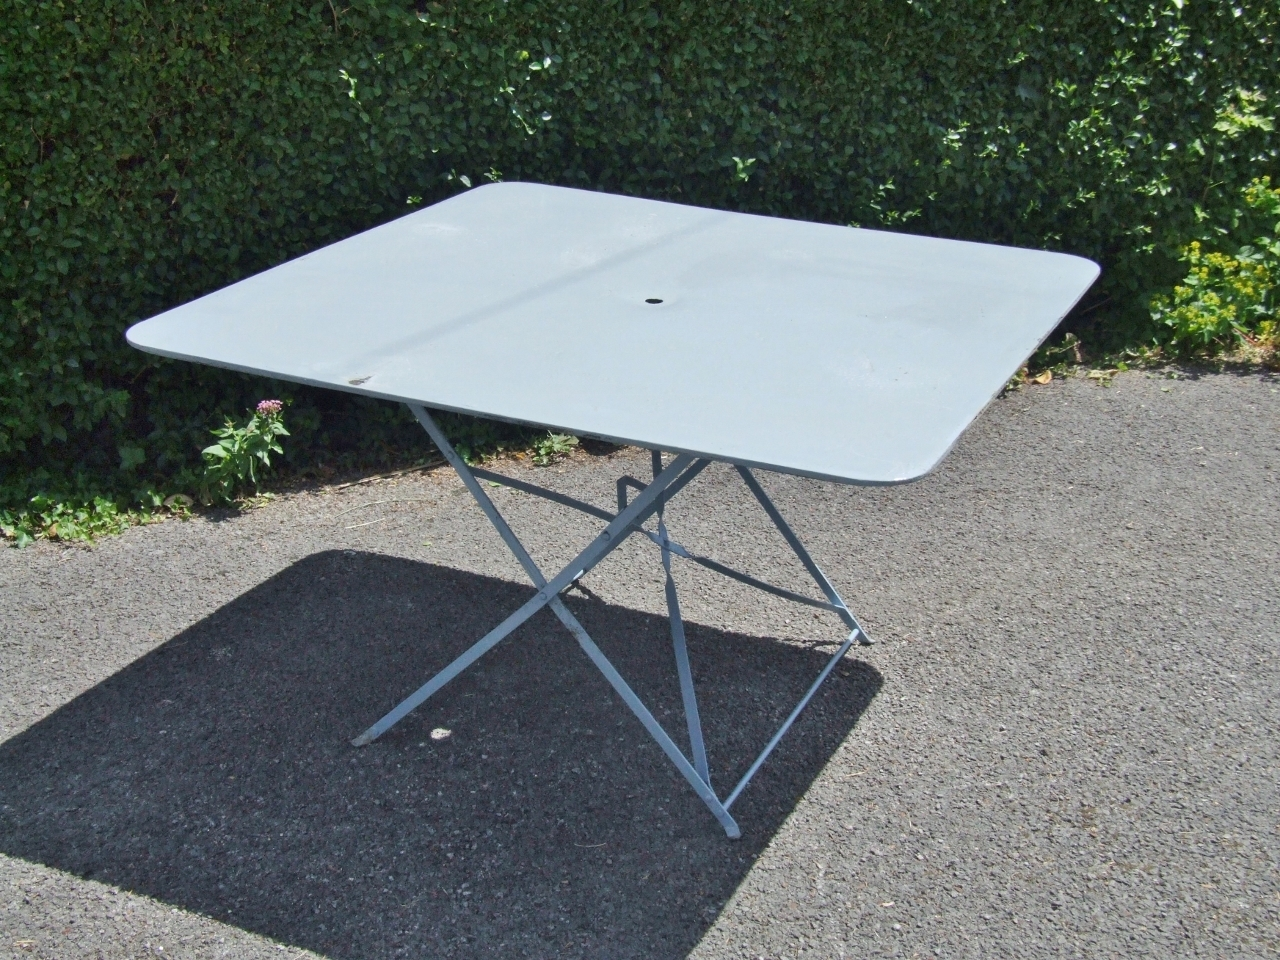 G293 S Large Vintage French Folding Metal Garden Patio Cafe Table Table